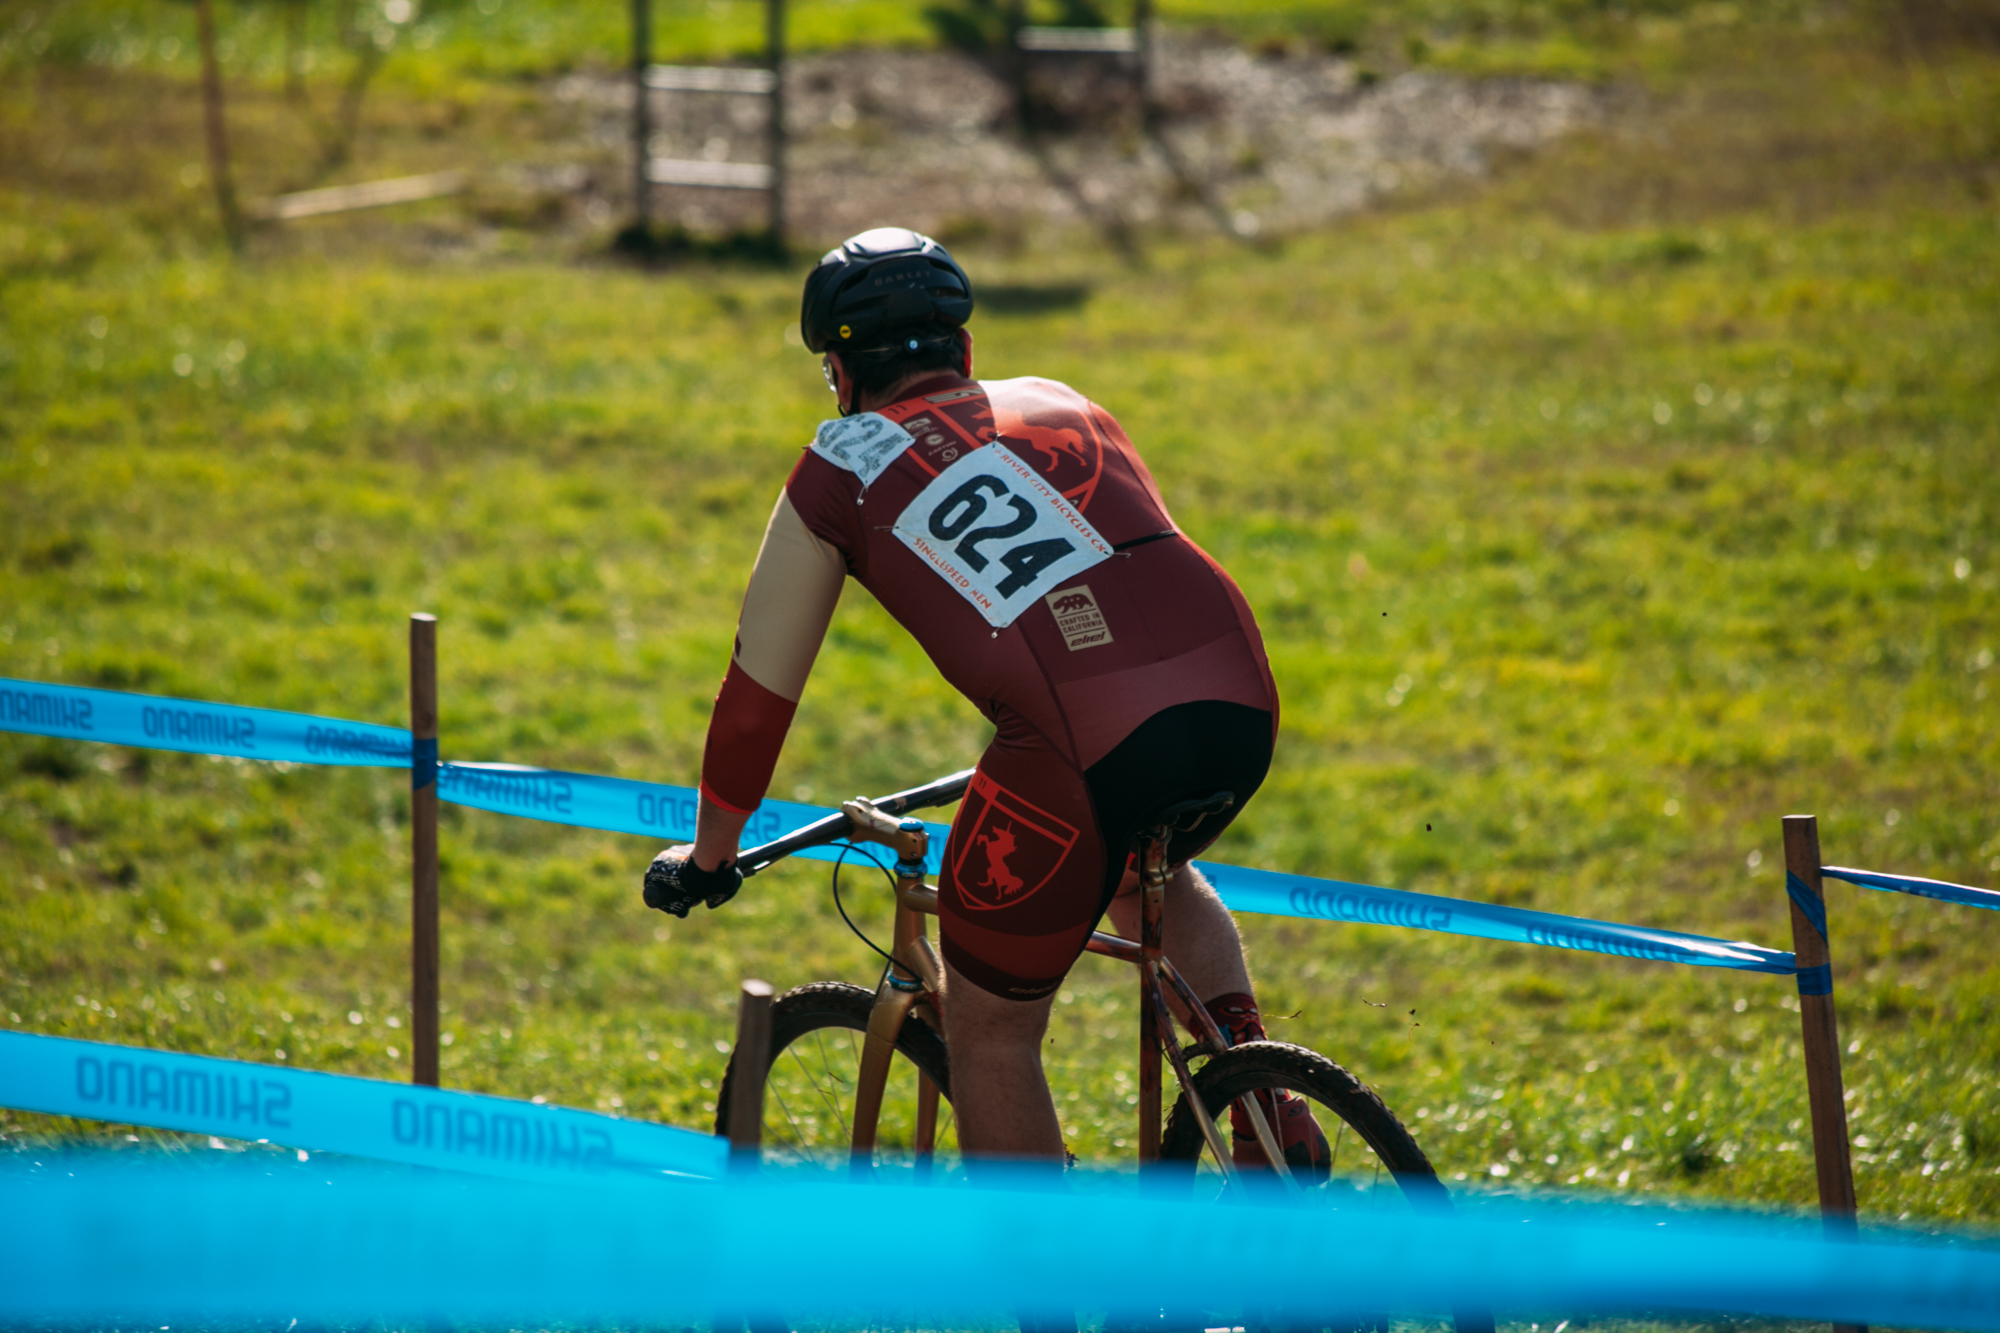 Cyclocross18_CCCX_RainierHS-110-mettlecycling.jpg